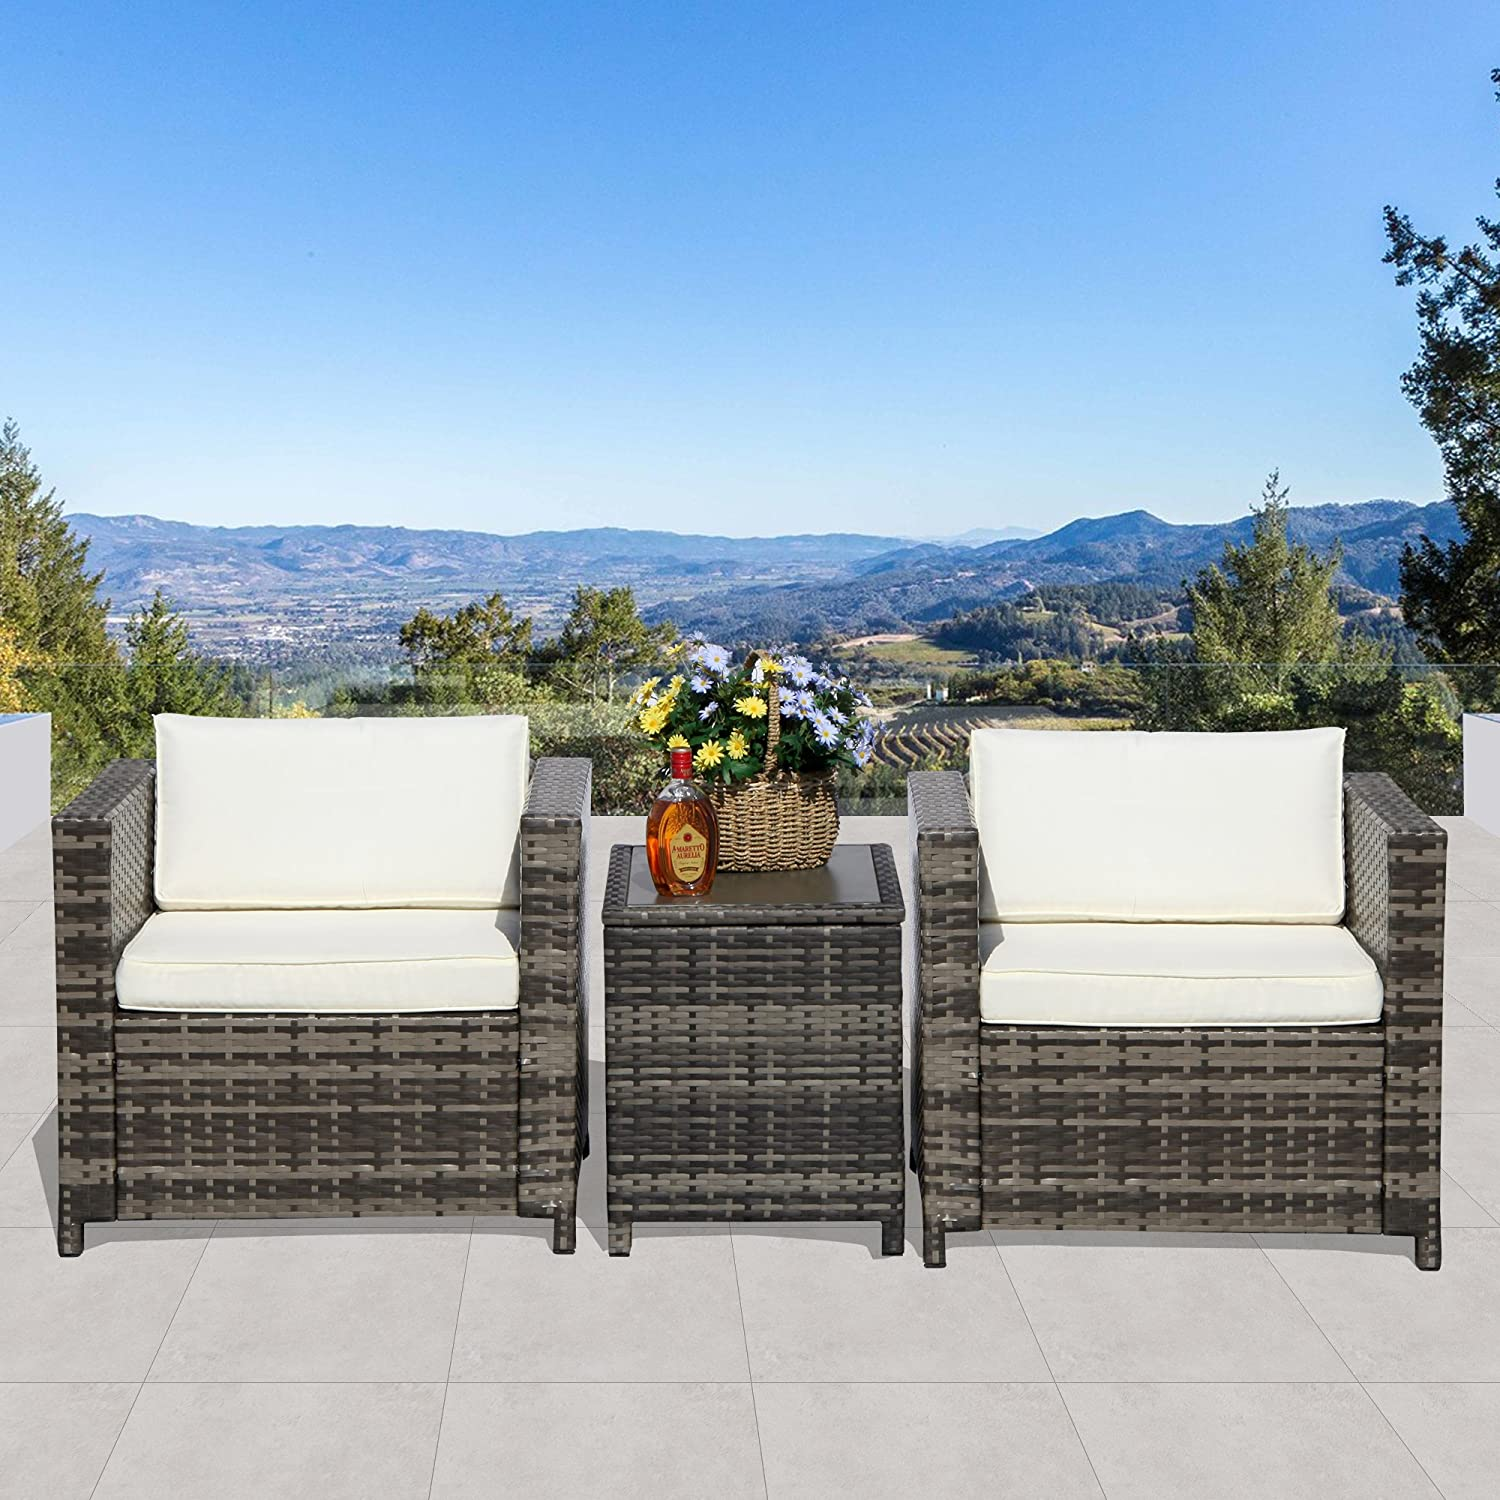 Patiorama 3 Pieces Patio Set Outdoor Wicker Patio Furniture Sets Modern Bistro Set Rattan Chair Conversation Sets with Storage Table Grey